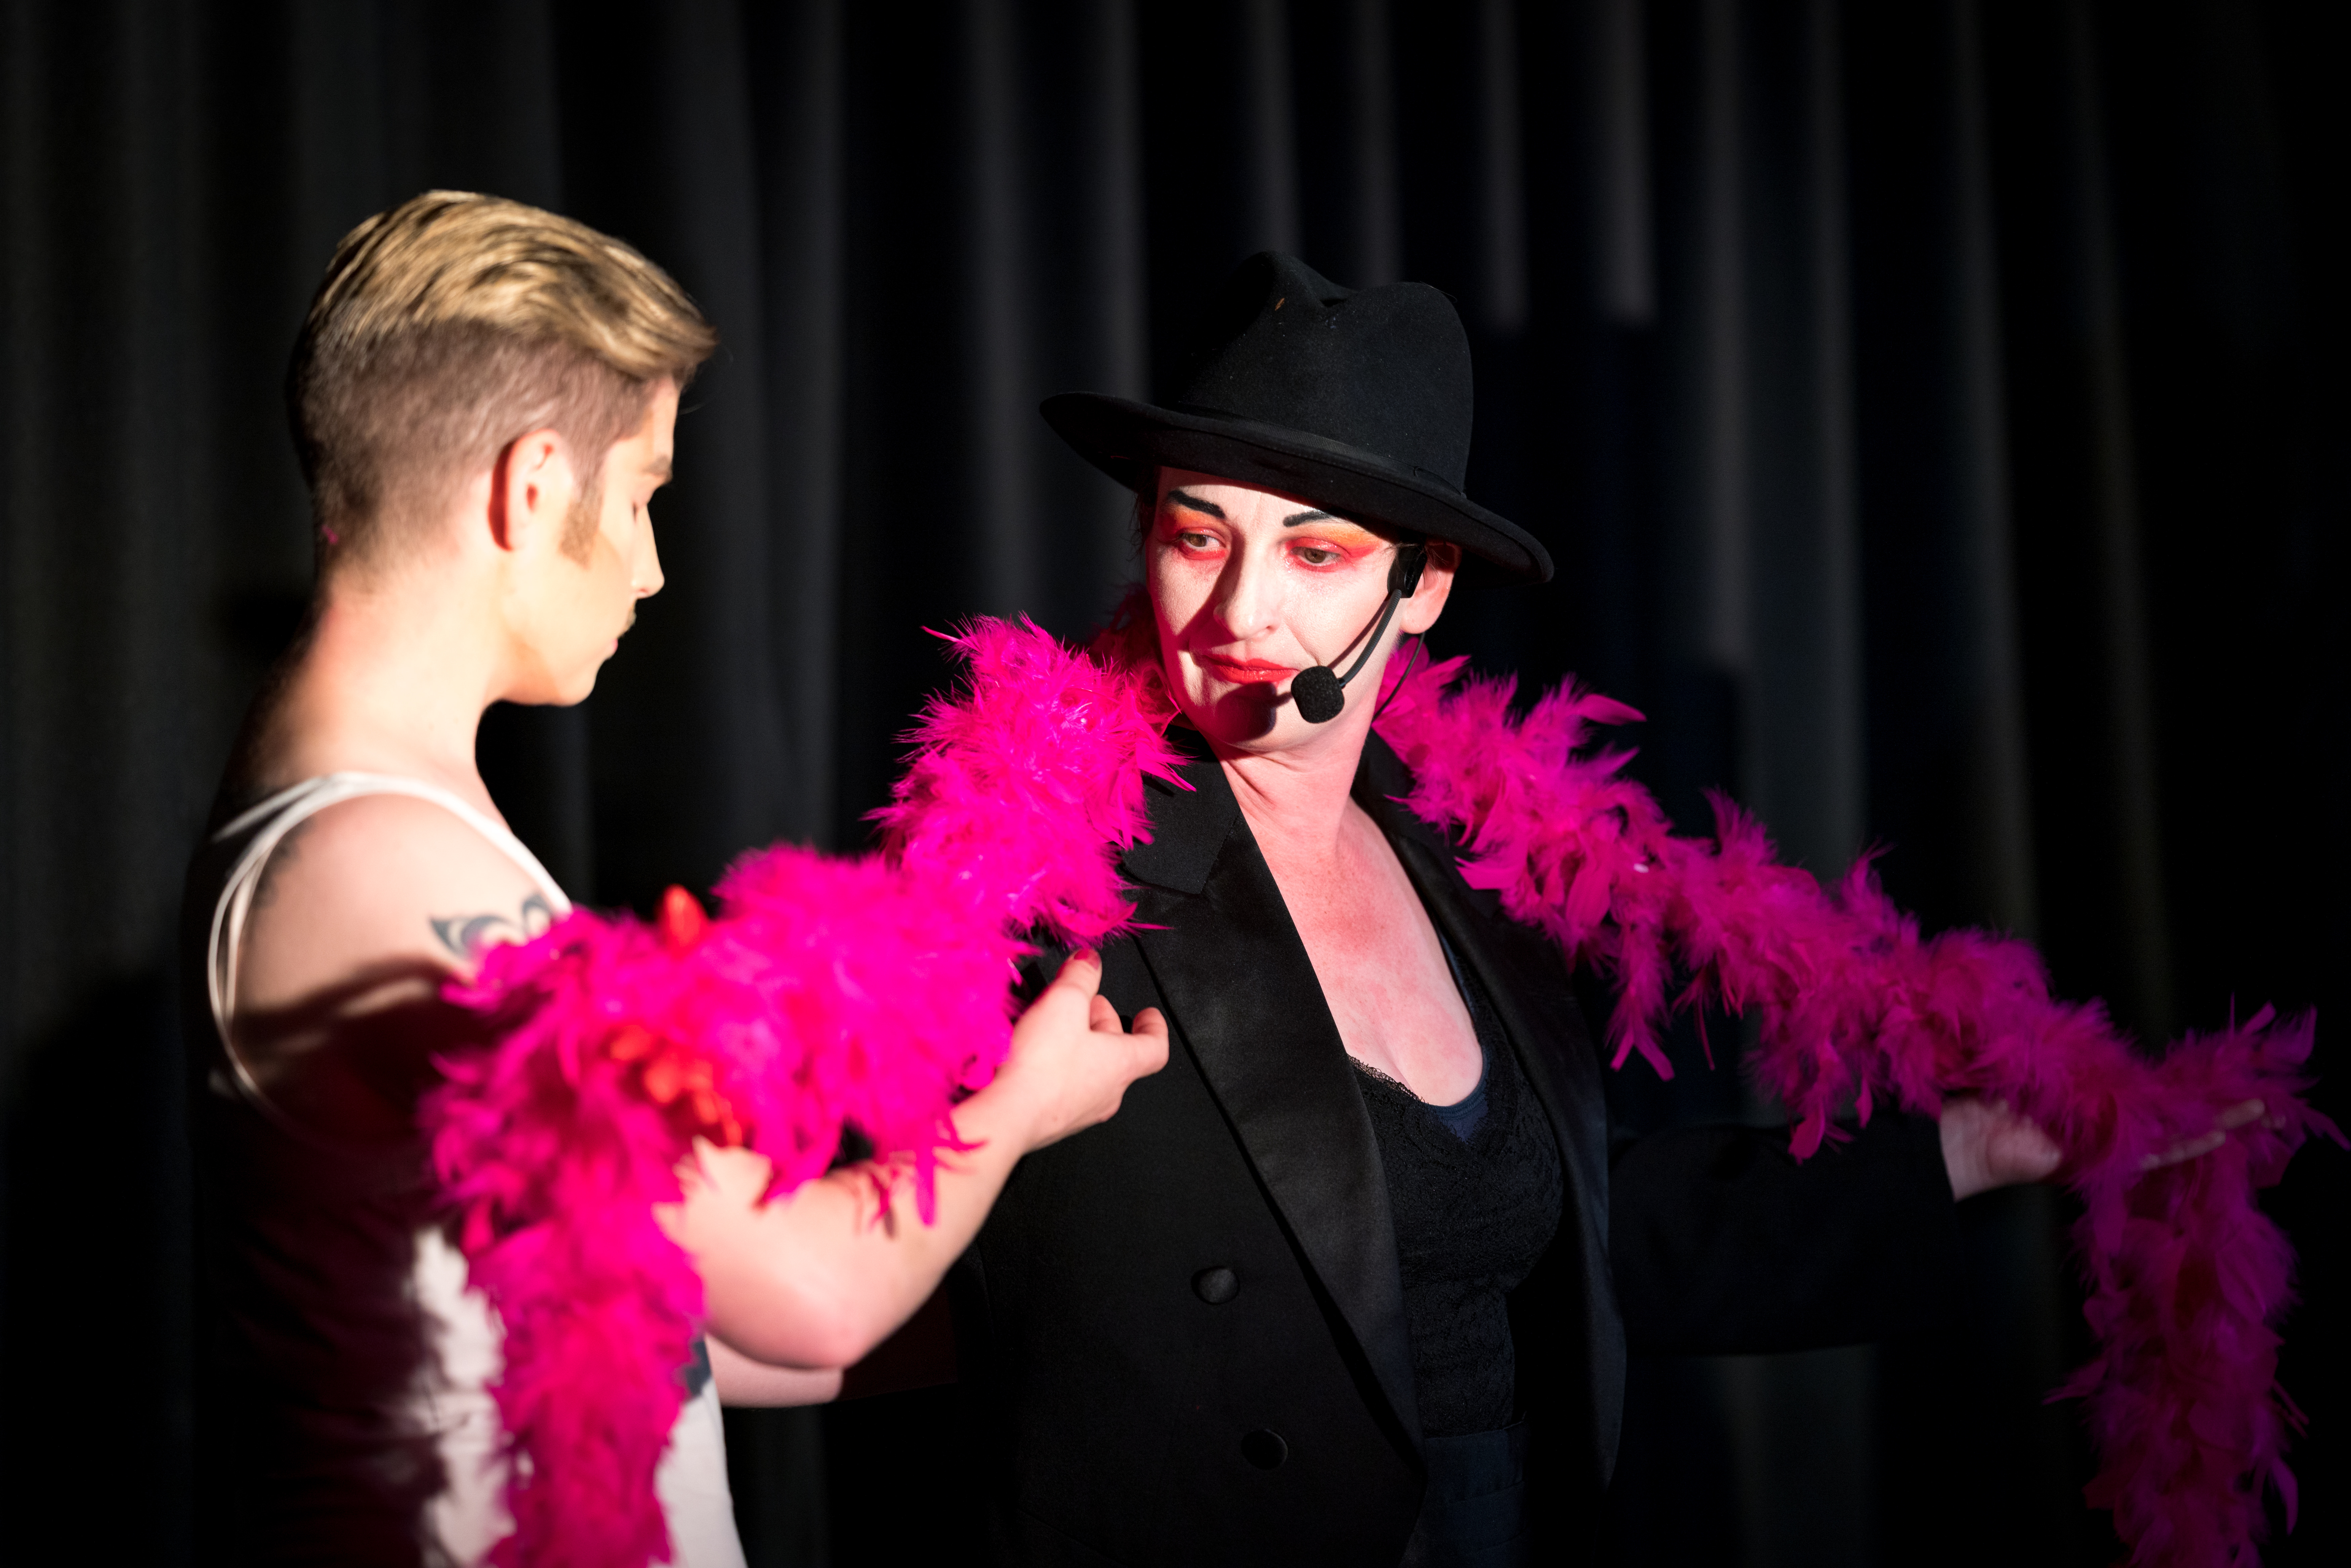 Two drag performers on stage. Right, a white woman with black bowler hat, a long pink feather boa and black suit jacket. The performer on the left is reaching up to the boa.